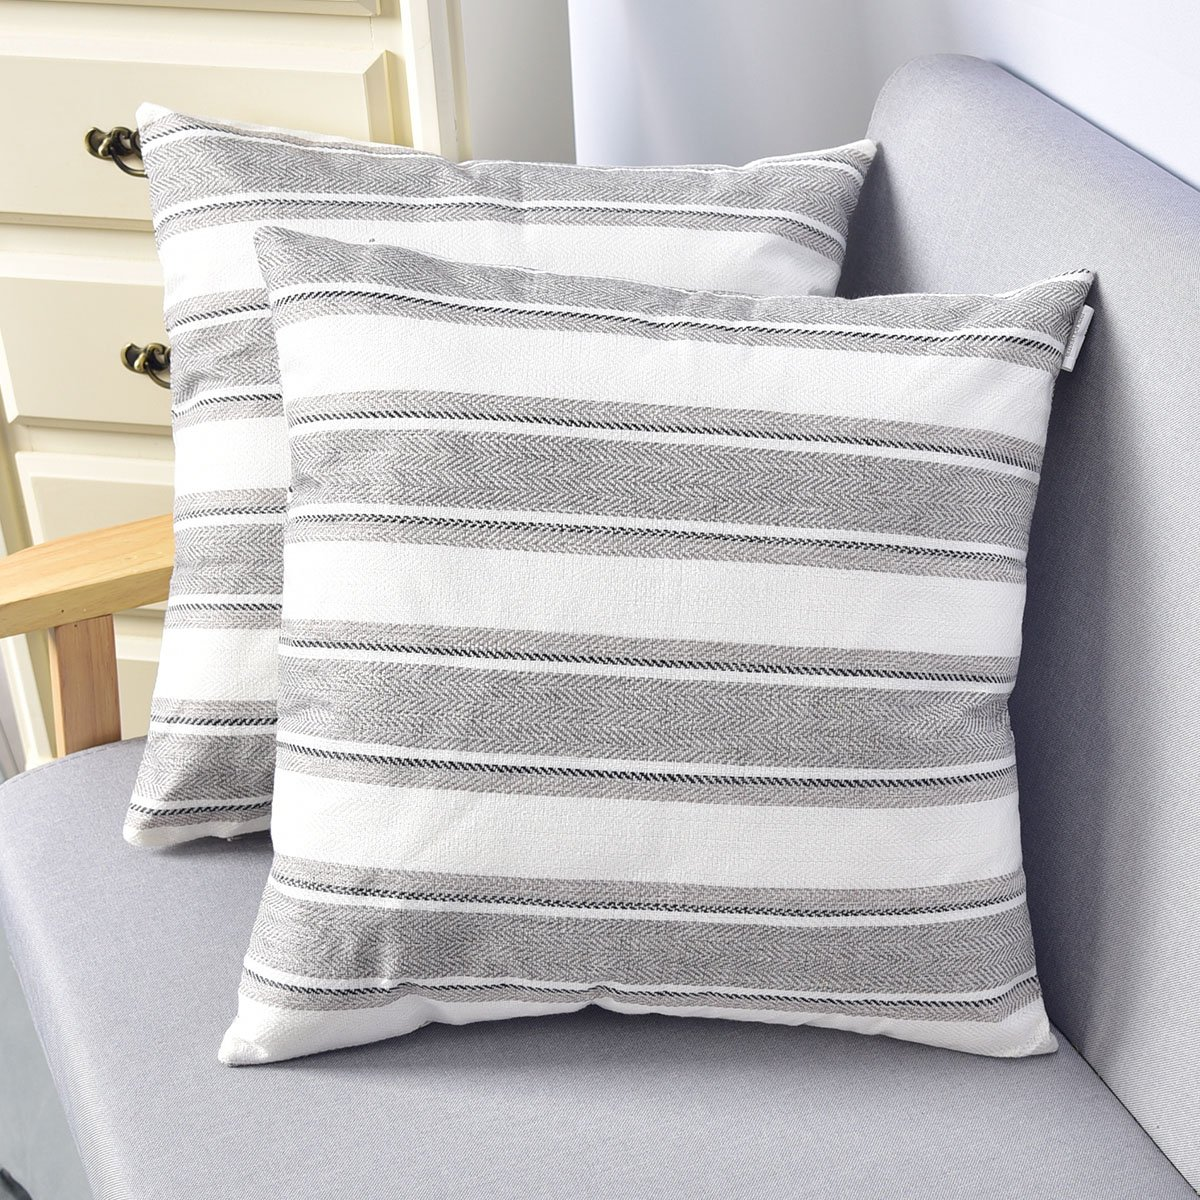 Natus Weaver Light Grey Pure White Striped Throw Cushion Faux Linen Home Decorative Hand Made Pillow Case Cushion Cover For Naps , 18 x 18 inch , 2 Pieces